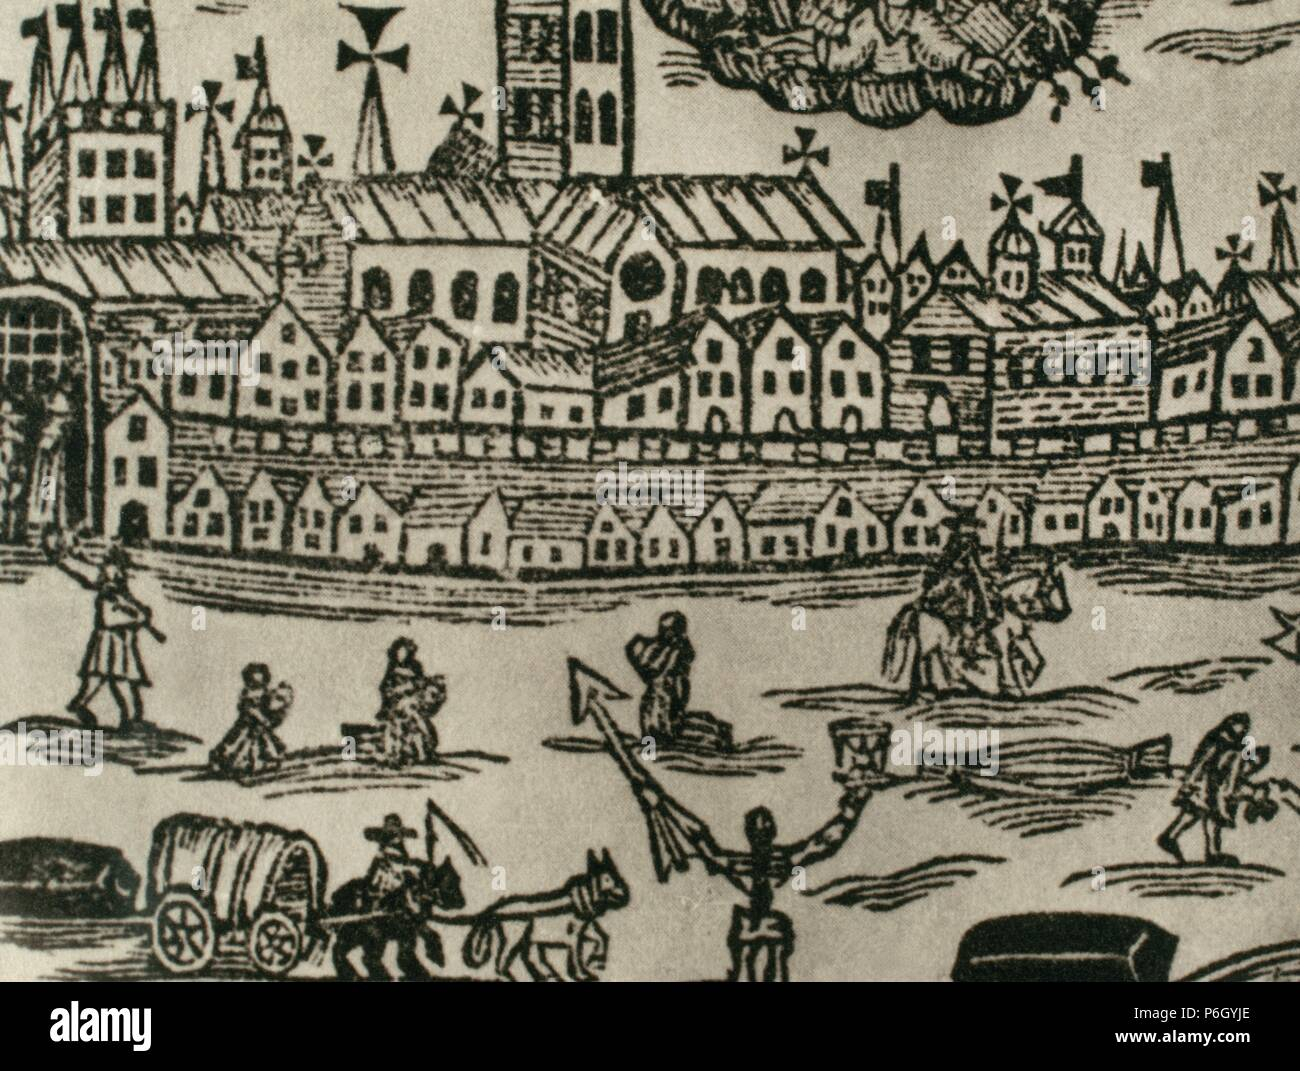 1665-1666. Contemporary engraving. People fleeing the city, corpse being  taken away and women praying. Great Britain.